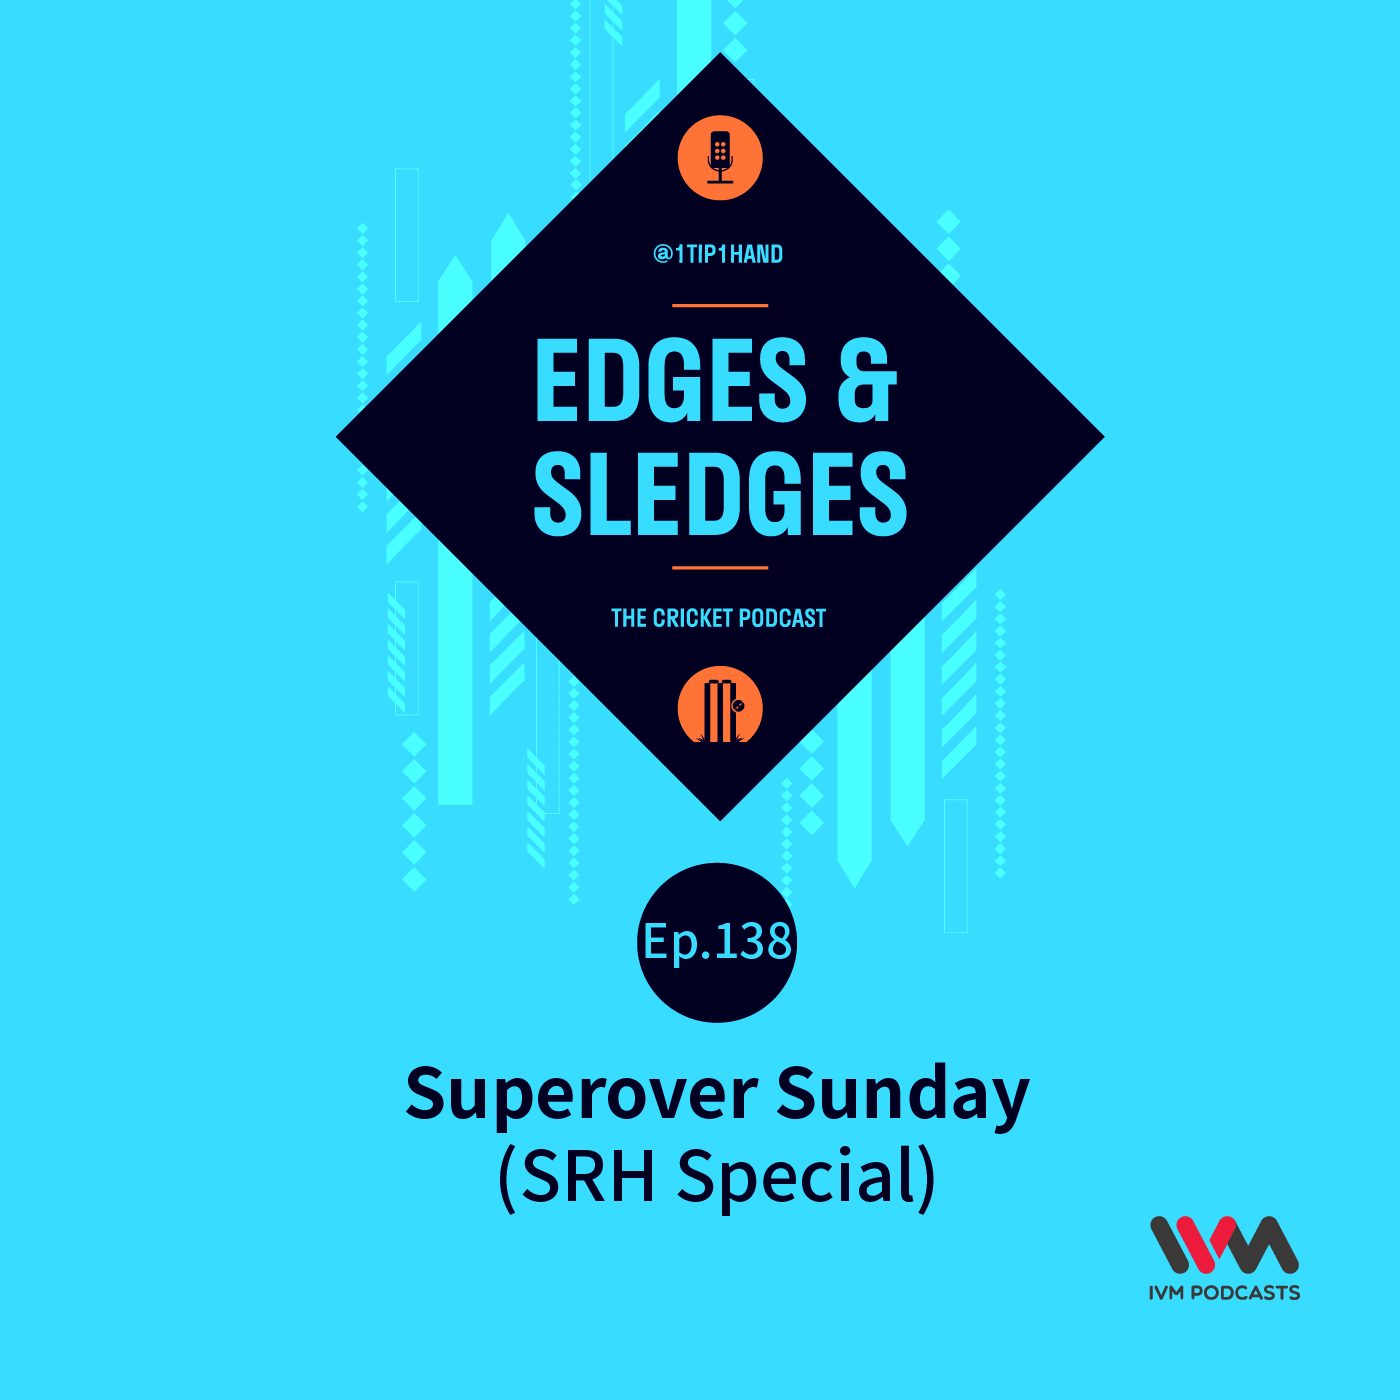 Ep. 138: Superover Sunday (SRH Special)